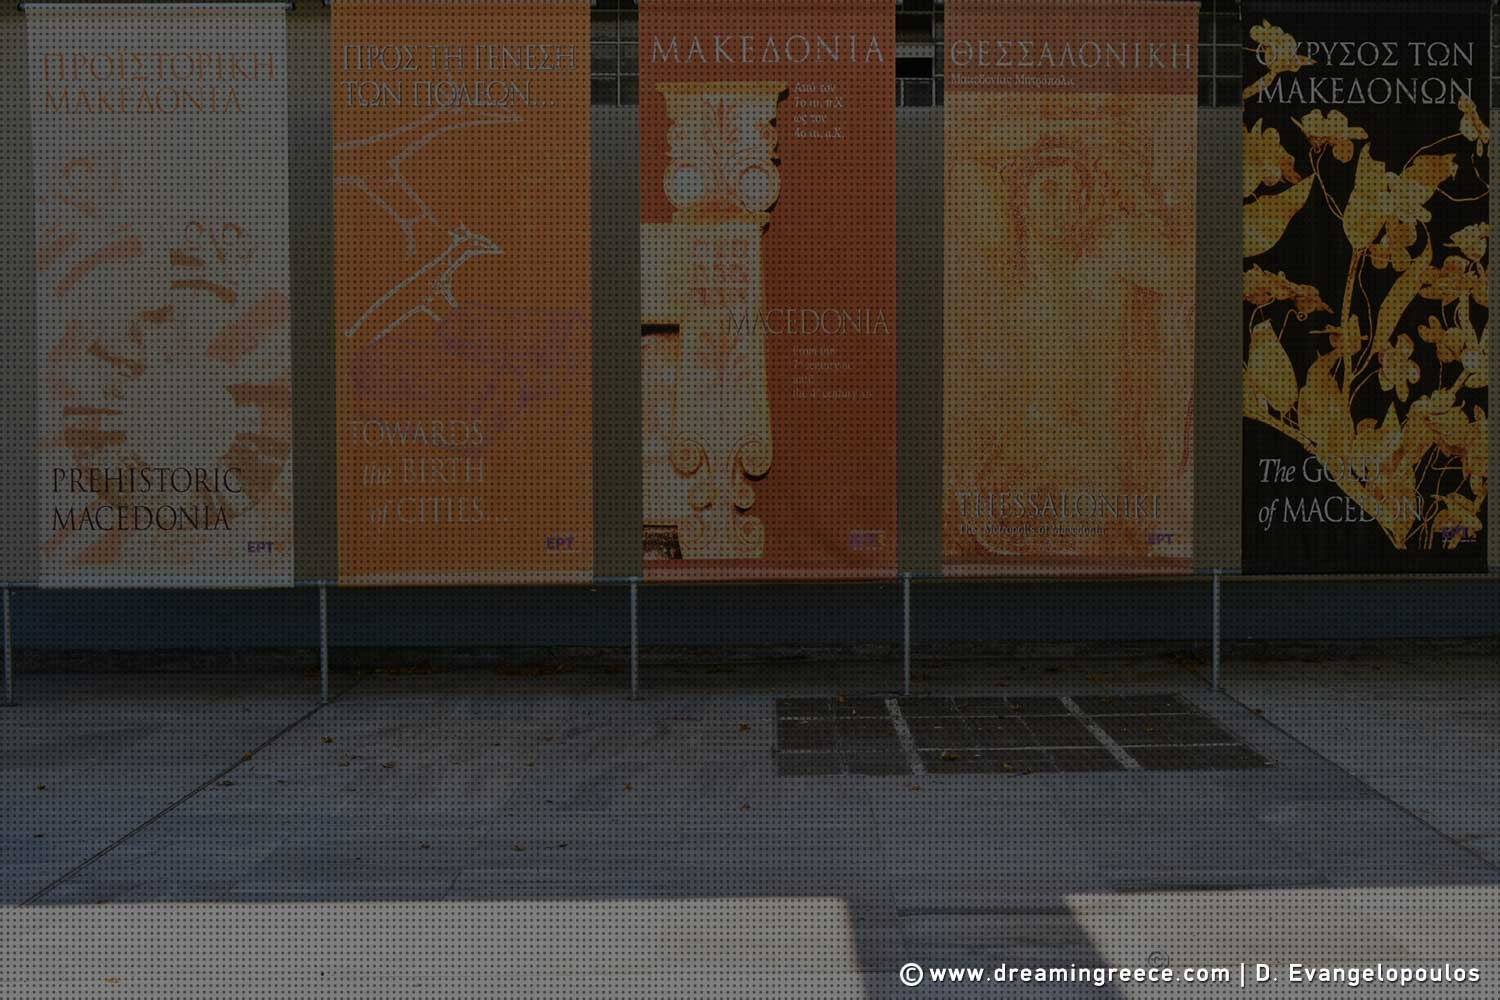 Archaeological Museum of Thessaloniki. Museums in Greece